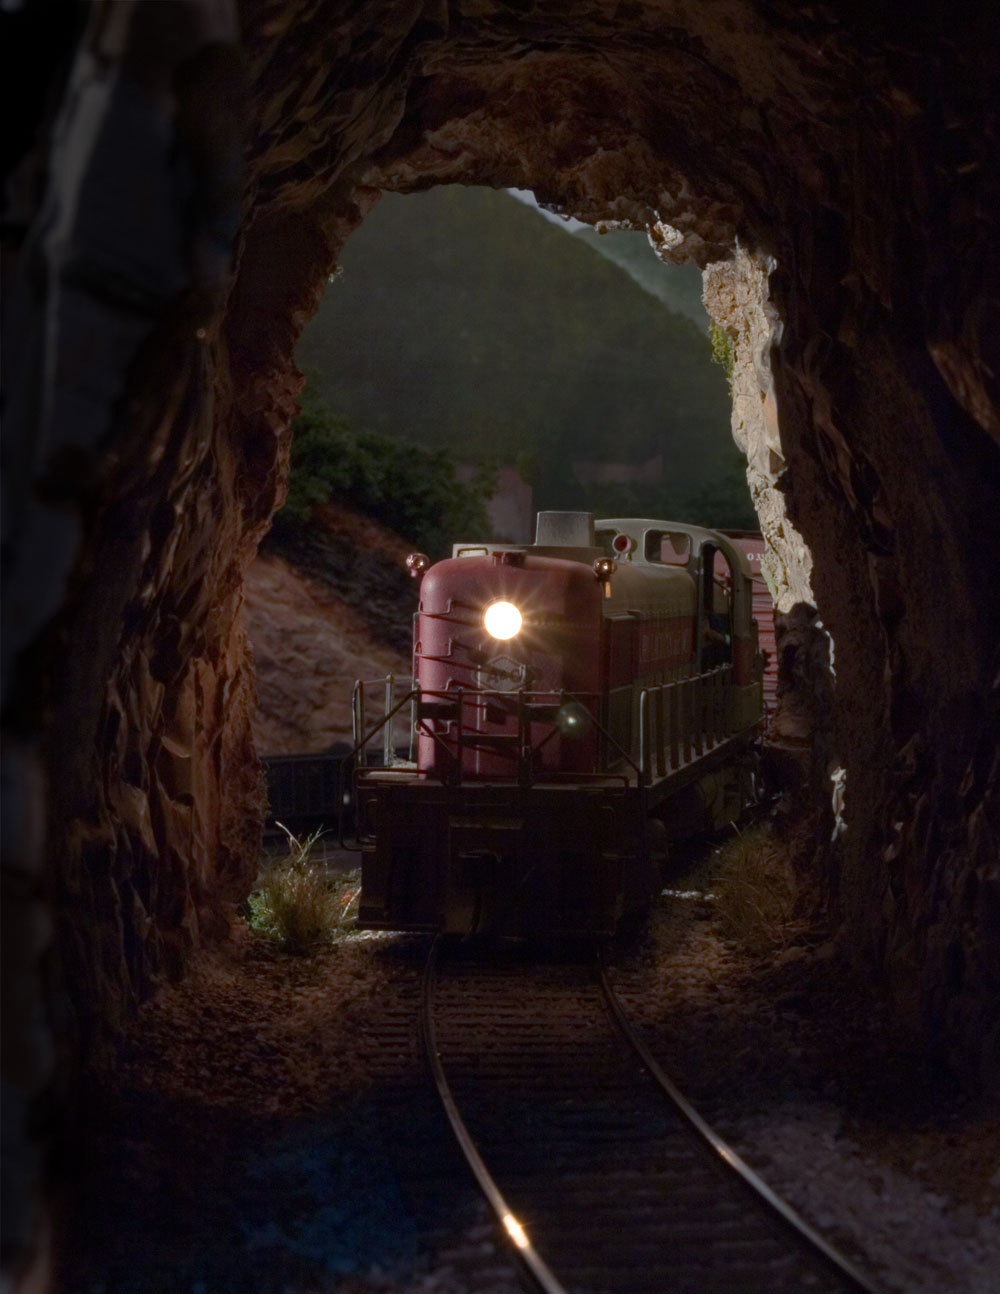 A&O #137 enters Speedy Tunnel having climbed the Morrison grade leaving the Willow Creek valley in the distance.